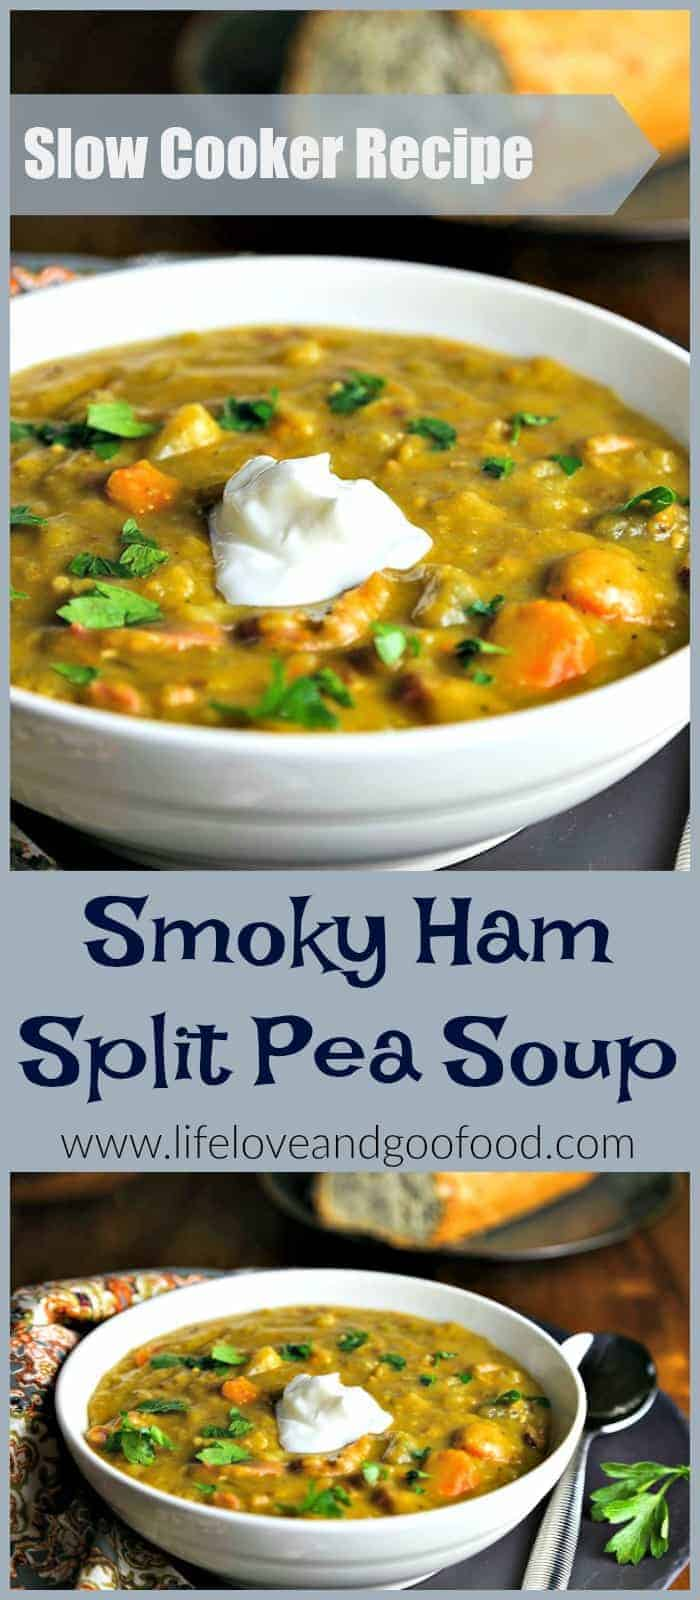 Smoky Ham Split Pea Soup | Slow Cooker Recipe | Life, Love, and Good Food